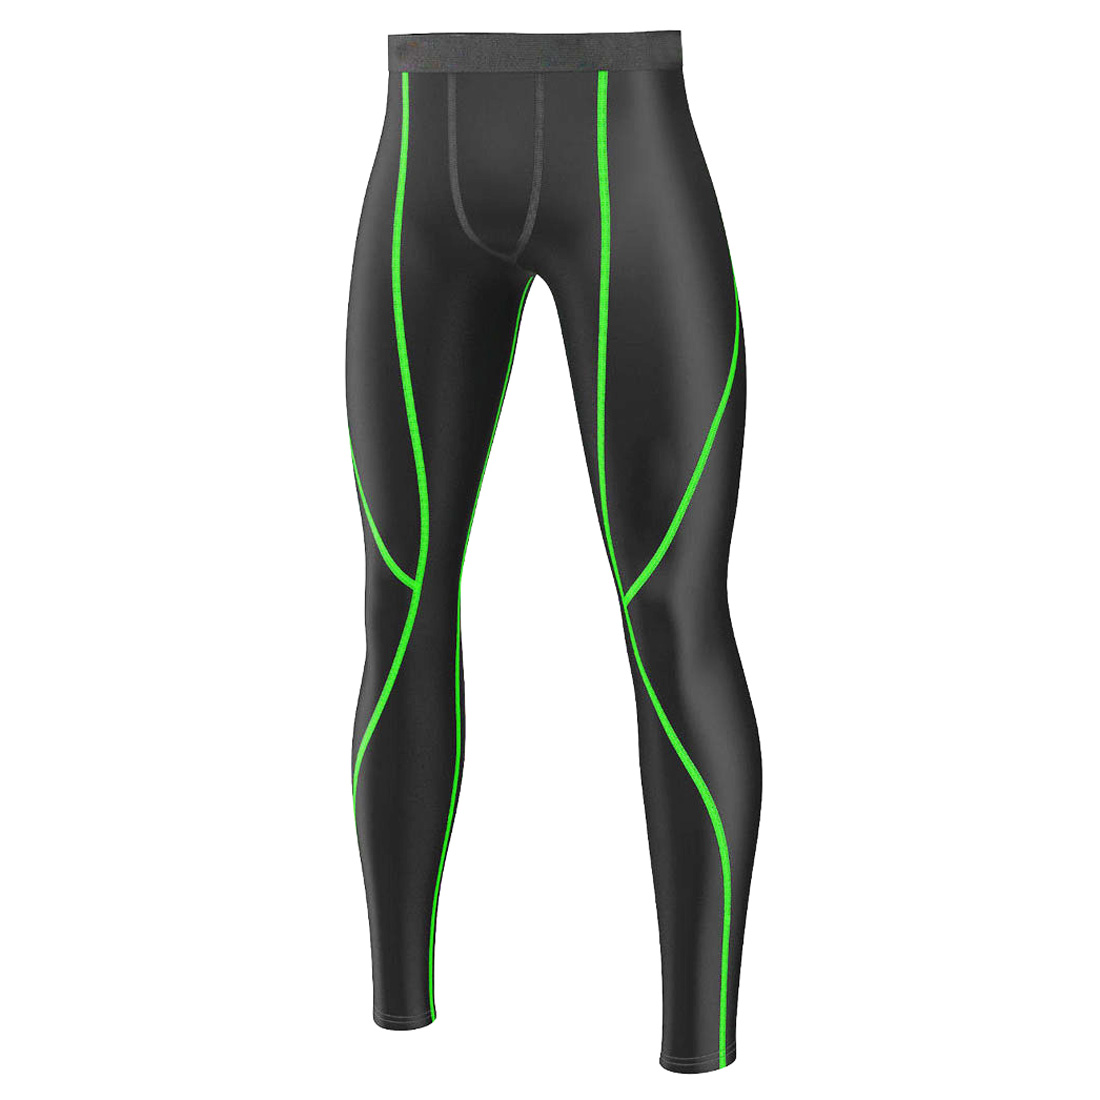 Find great deals on eBay for Compression Running Tights in Athletic Apparel for Men. Shop with confidence.